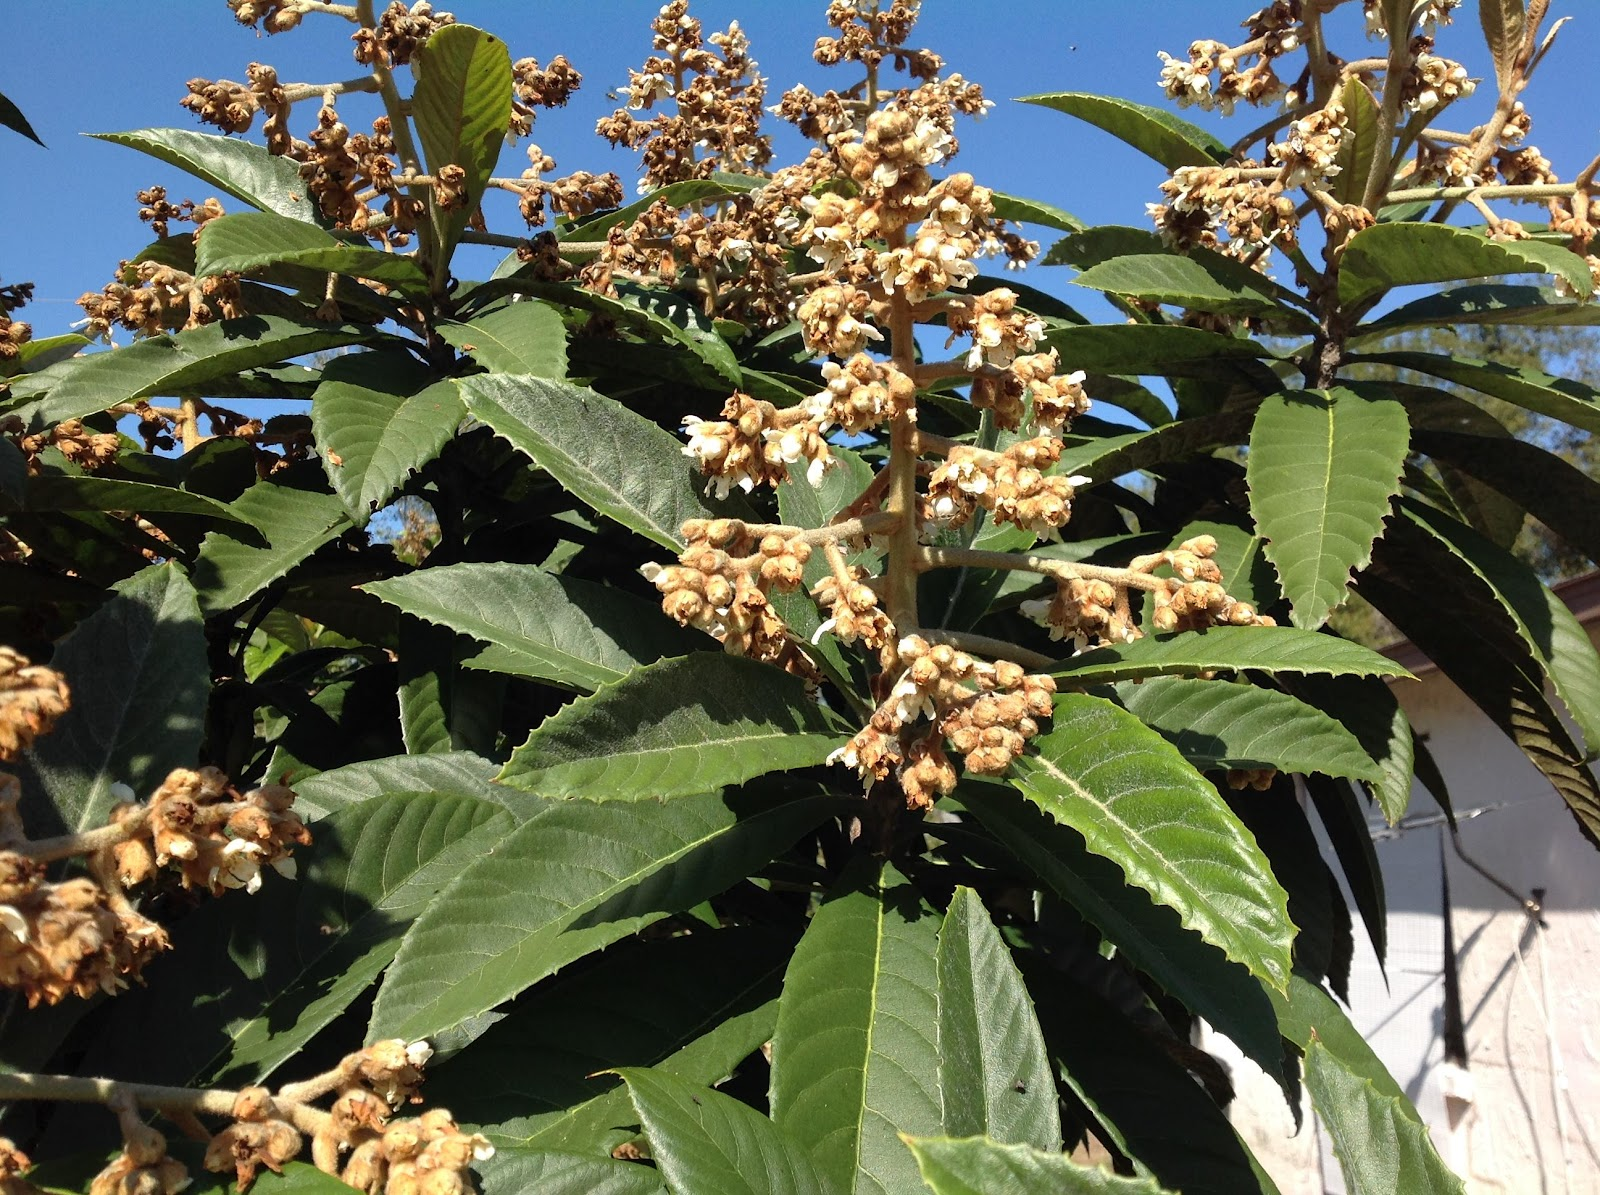 Loquat buds and fruitlings in December 2019 - New Port Richey, FL